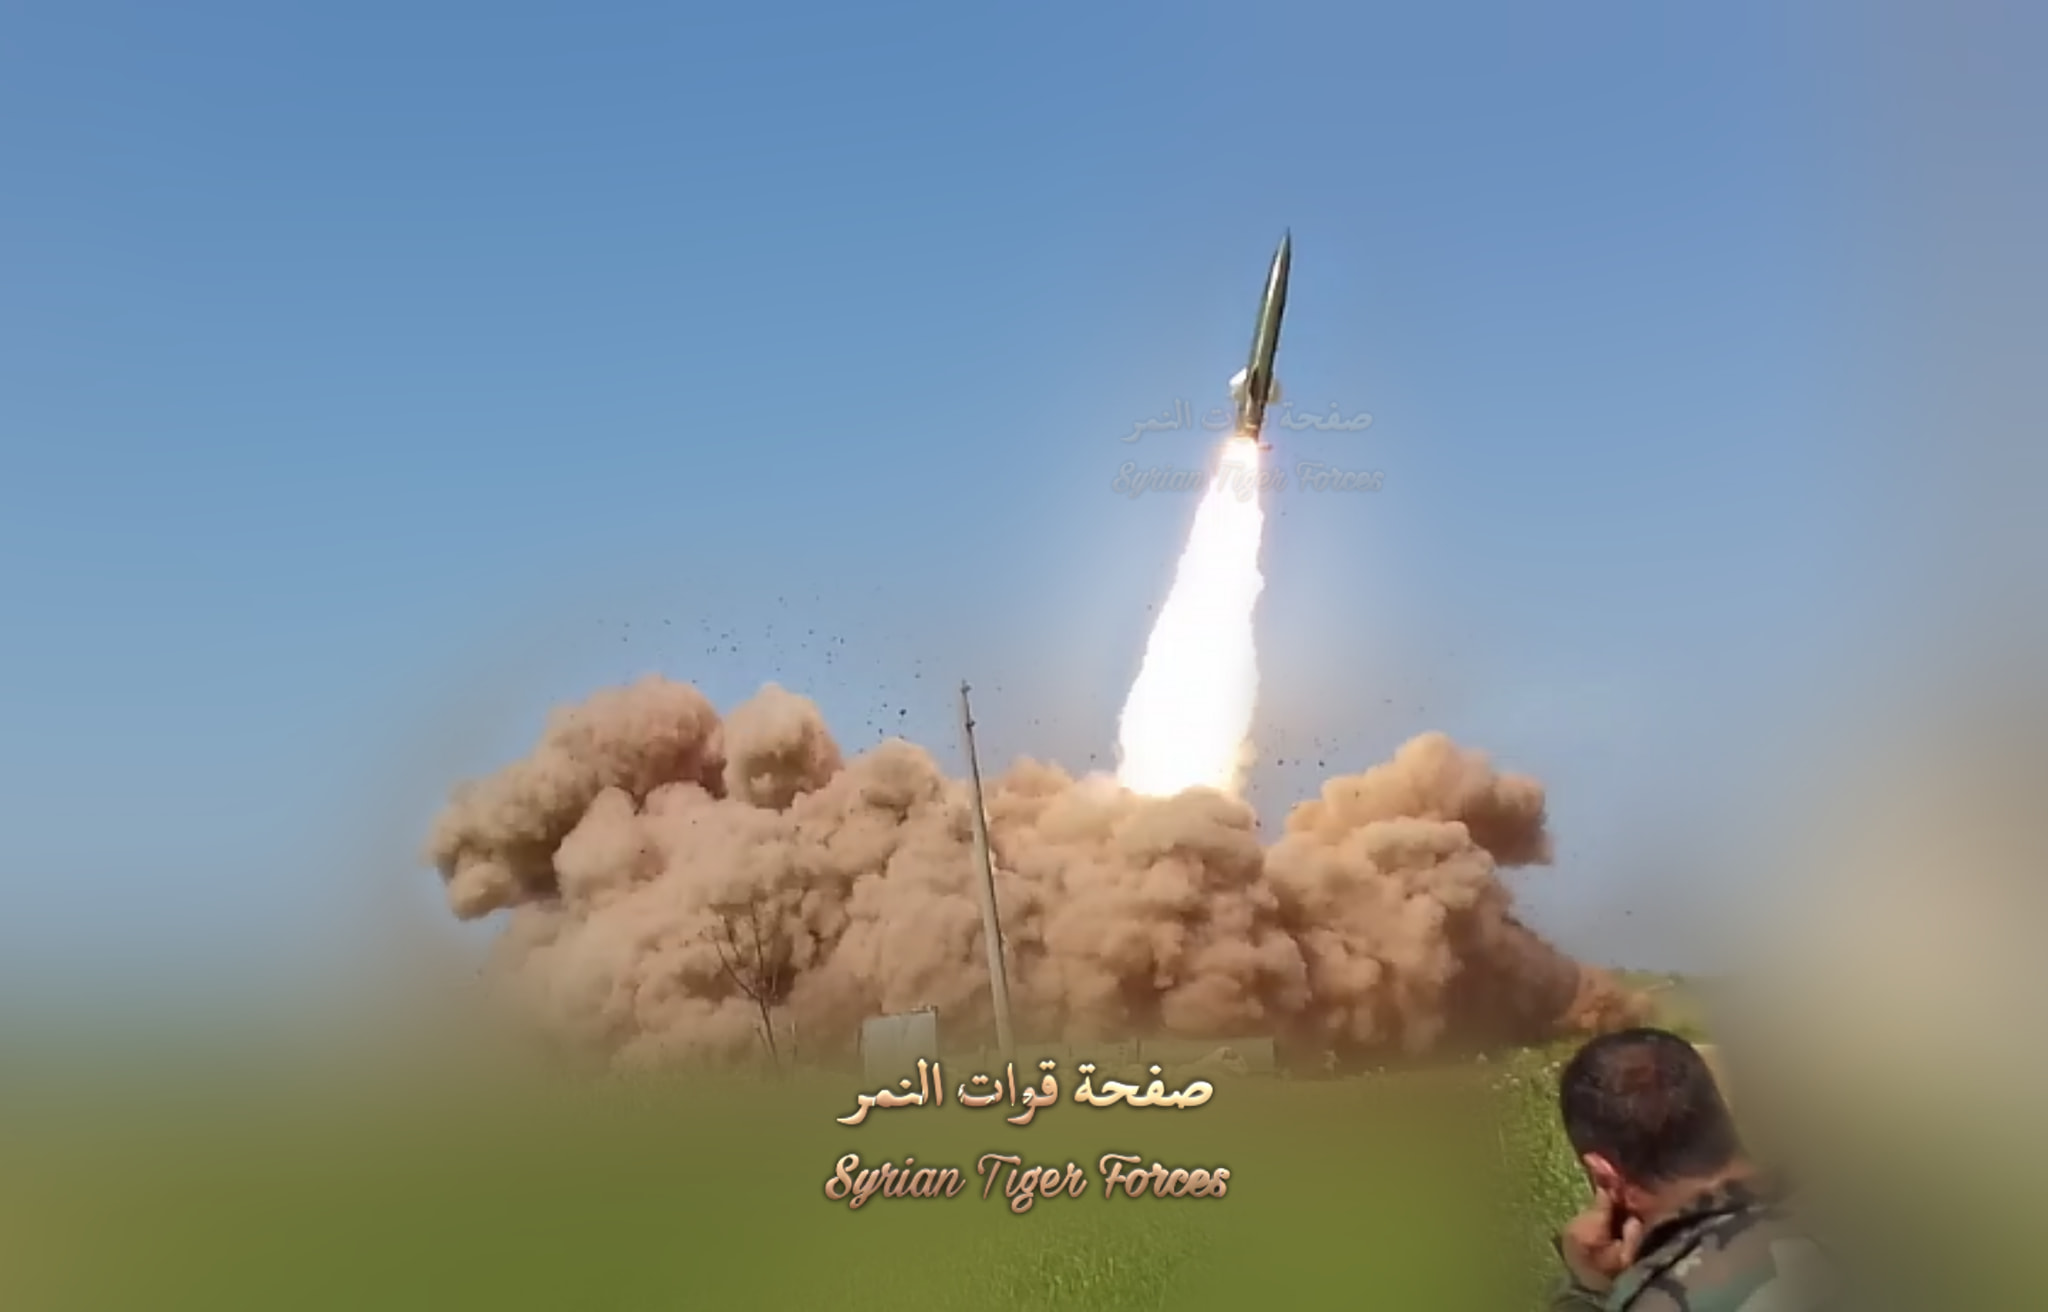 Syrian Army Launches Ballistic Missile At Militants' Positions In Western Idlib